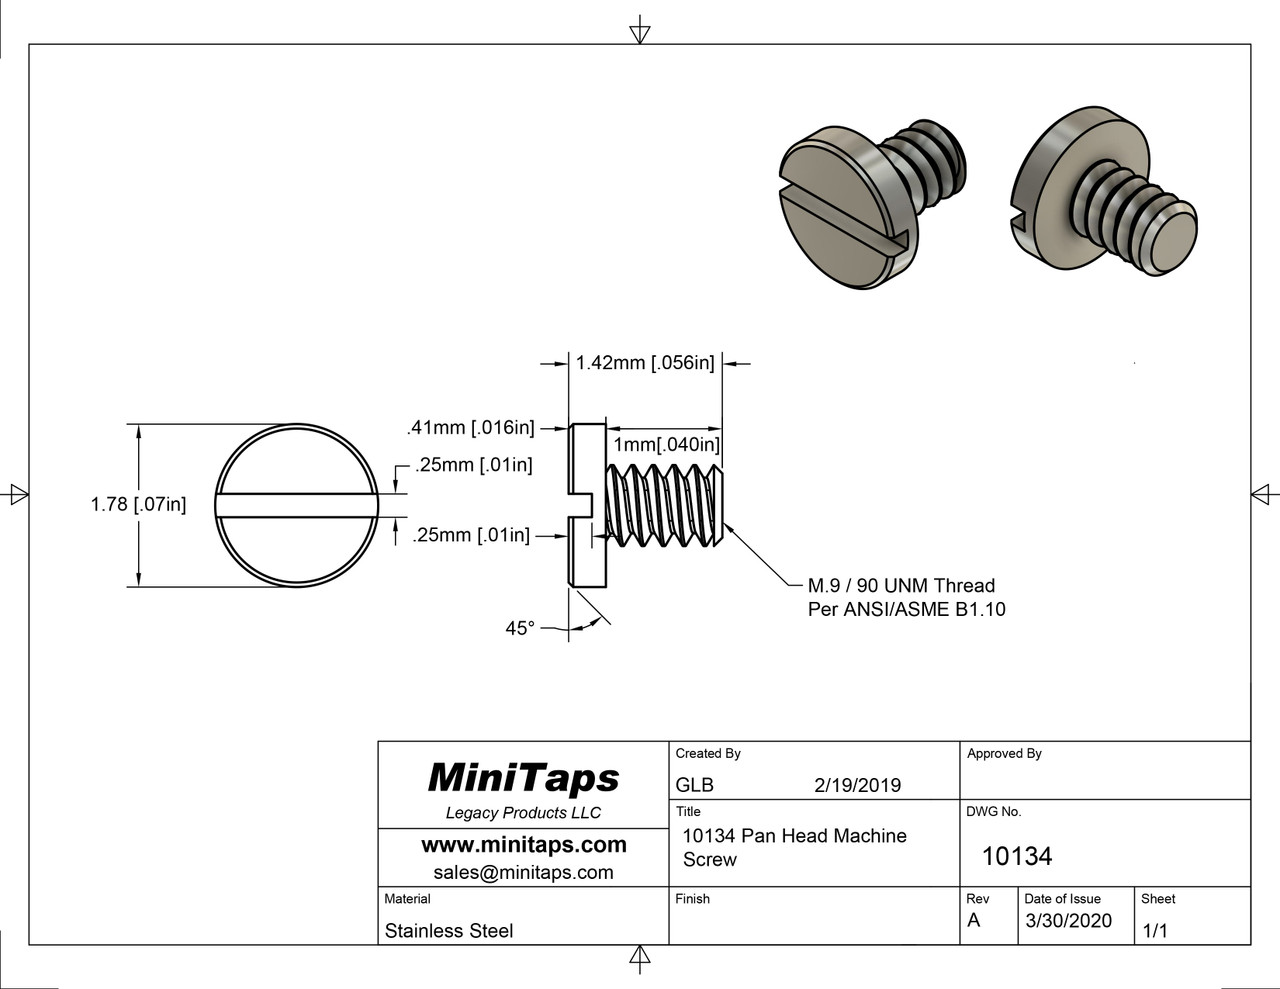 """Pan Head Machine Screw  Thread M.9 (90UNM), 1mm [.040""""] Threaded Length  Instrument grade part made of stainless steel. Made on a precision screw machine and not cold headed. Traceable and with certification.  Price is per 100 count with bulk pricing available. Please contact sales@minitaps.com for any additional questions or information."""